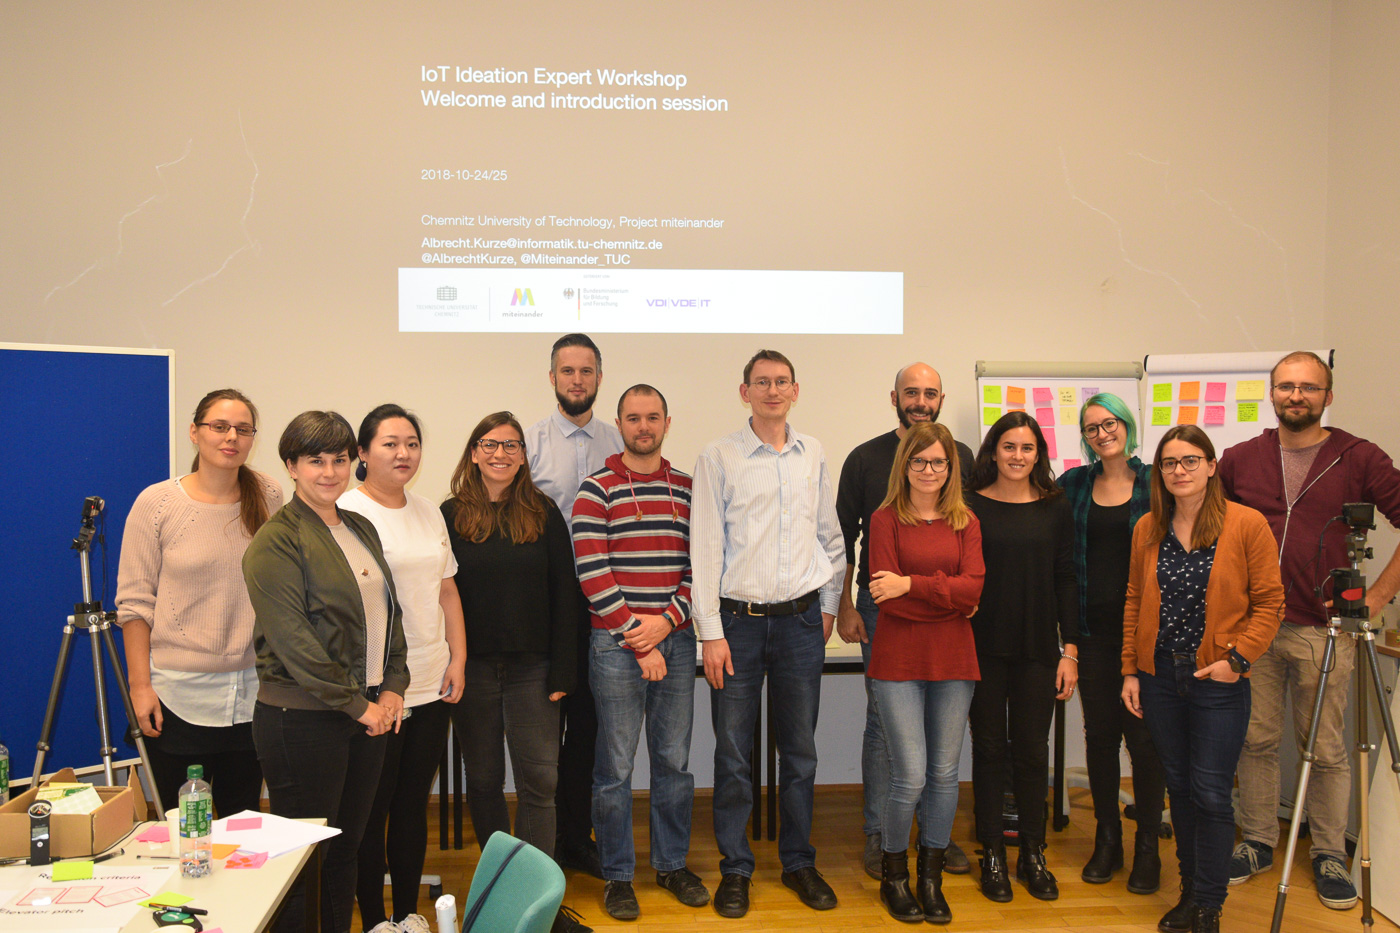 Researchers from Belgium, Finland, Italy, the Netherlands and Germany in Chemnitz after our Ideation Expert Workshop